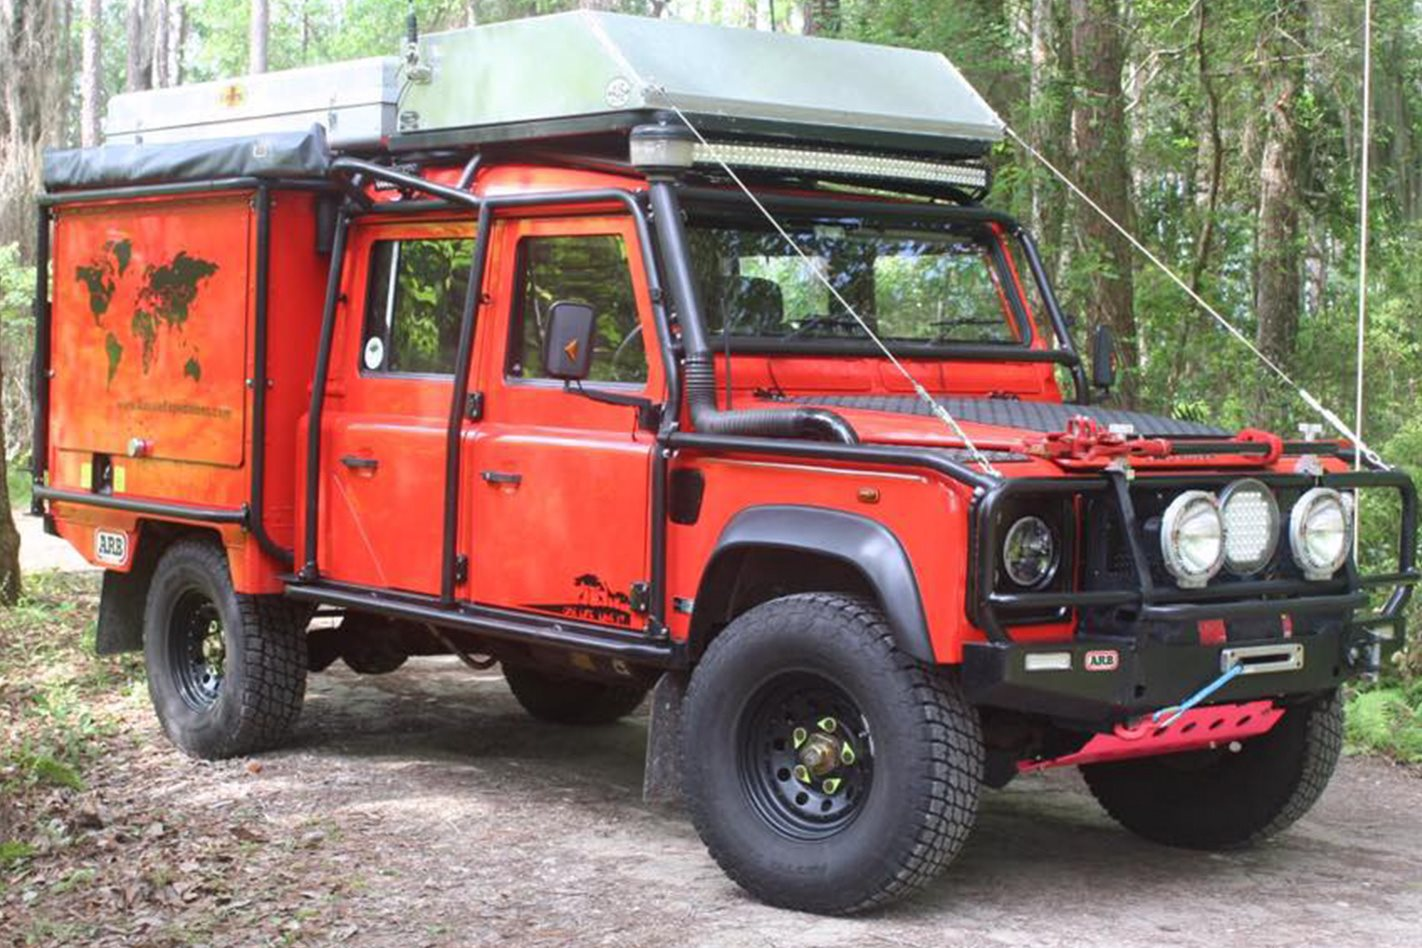 2006 LAND ROVER DEFENDER 130 TD5 – SHAYNE YOUNG